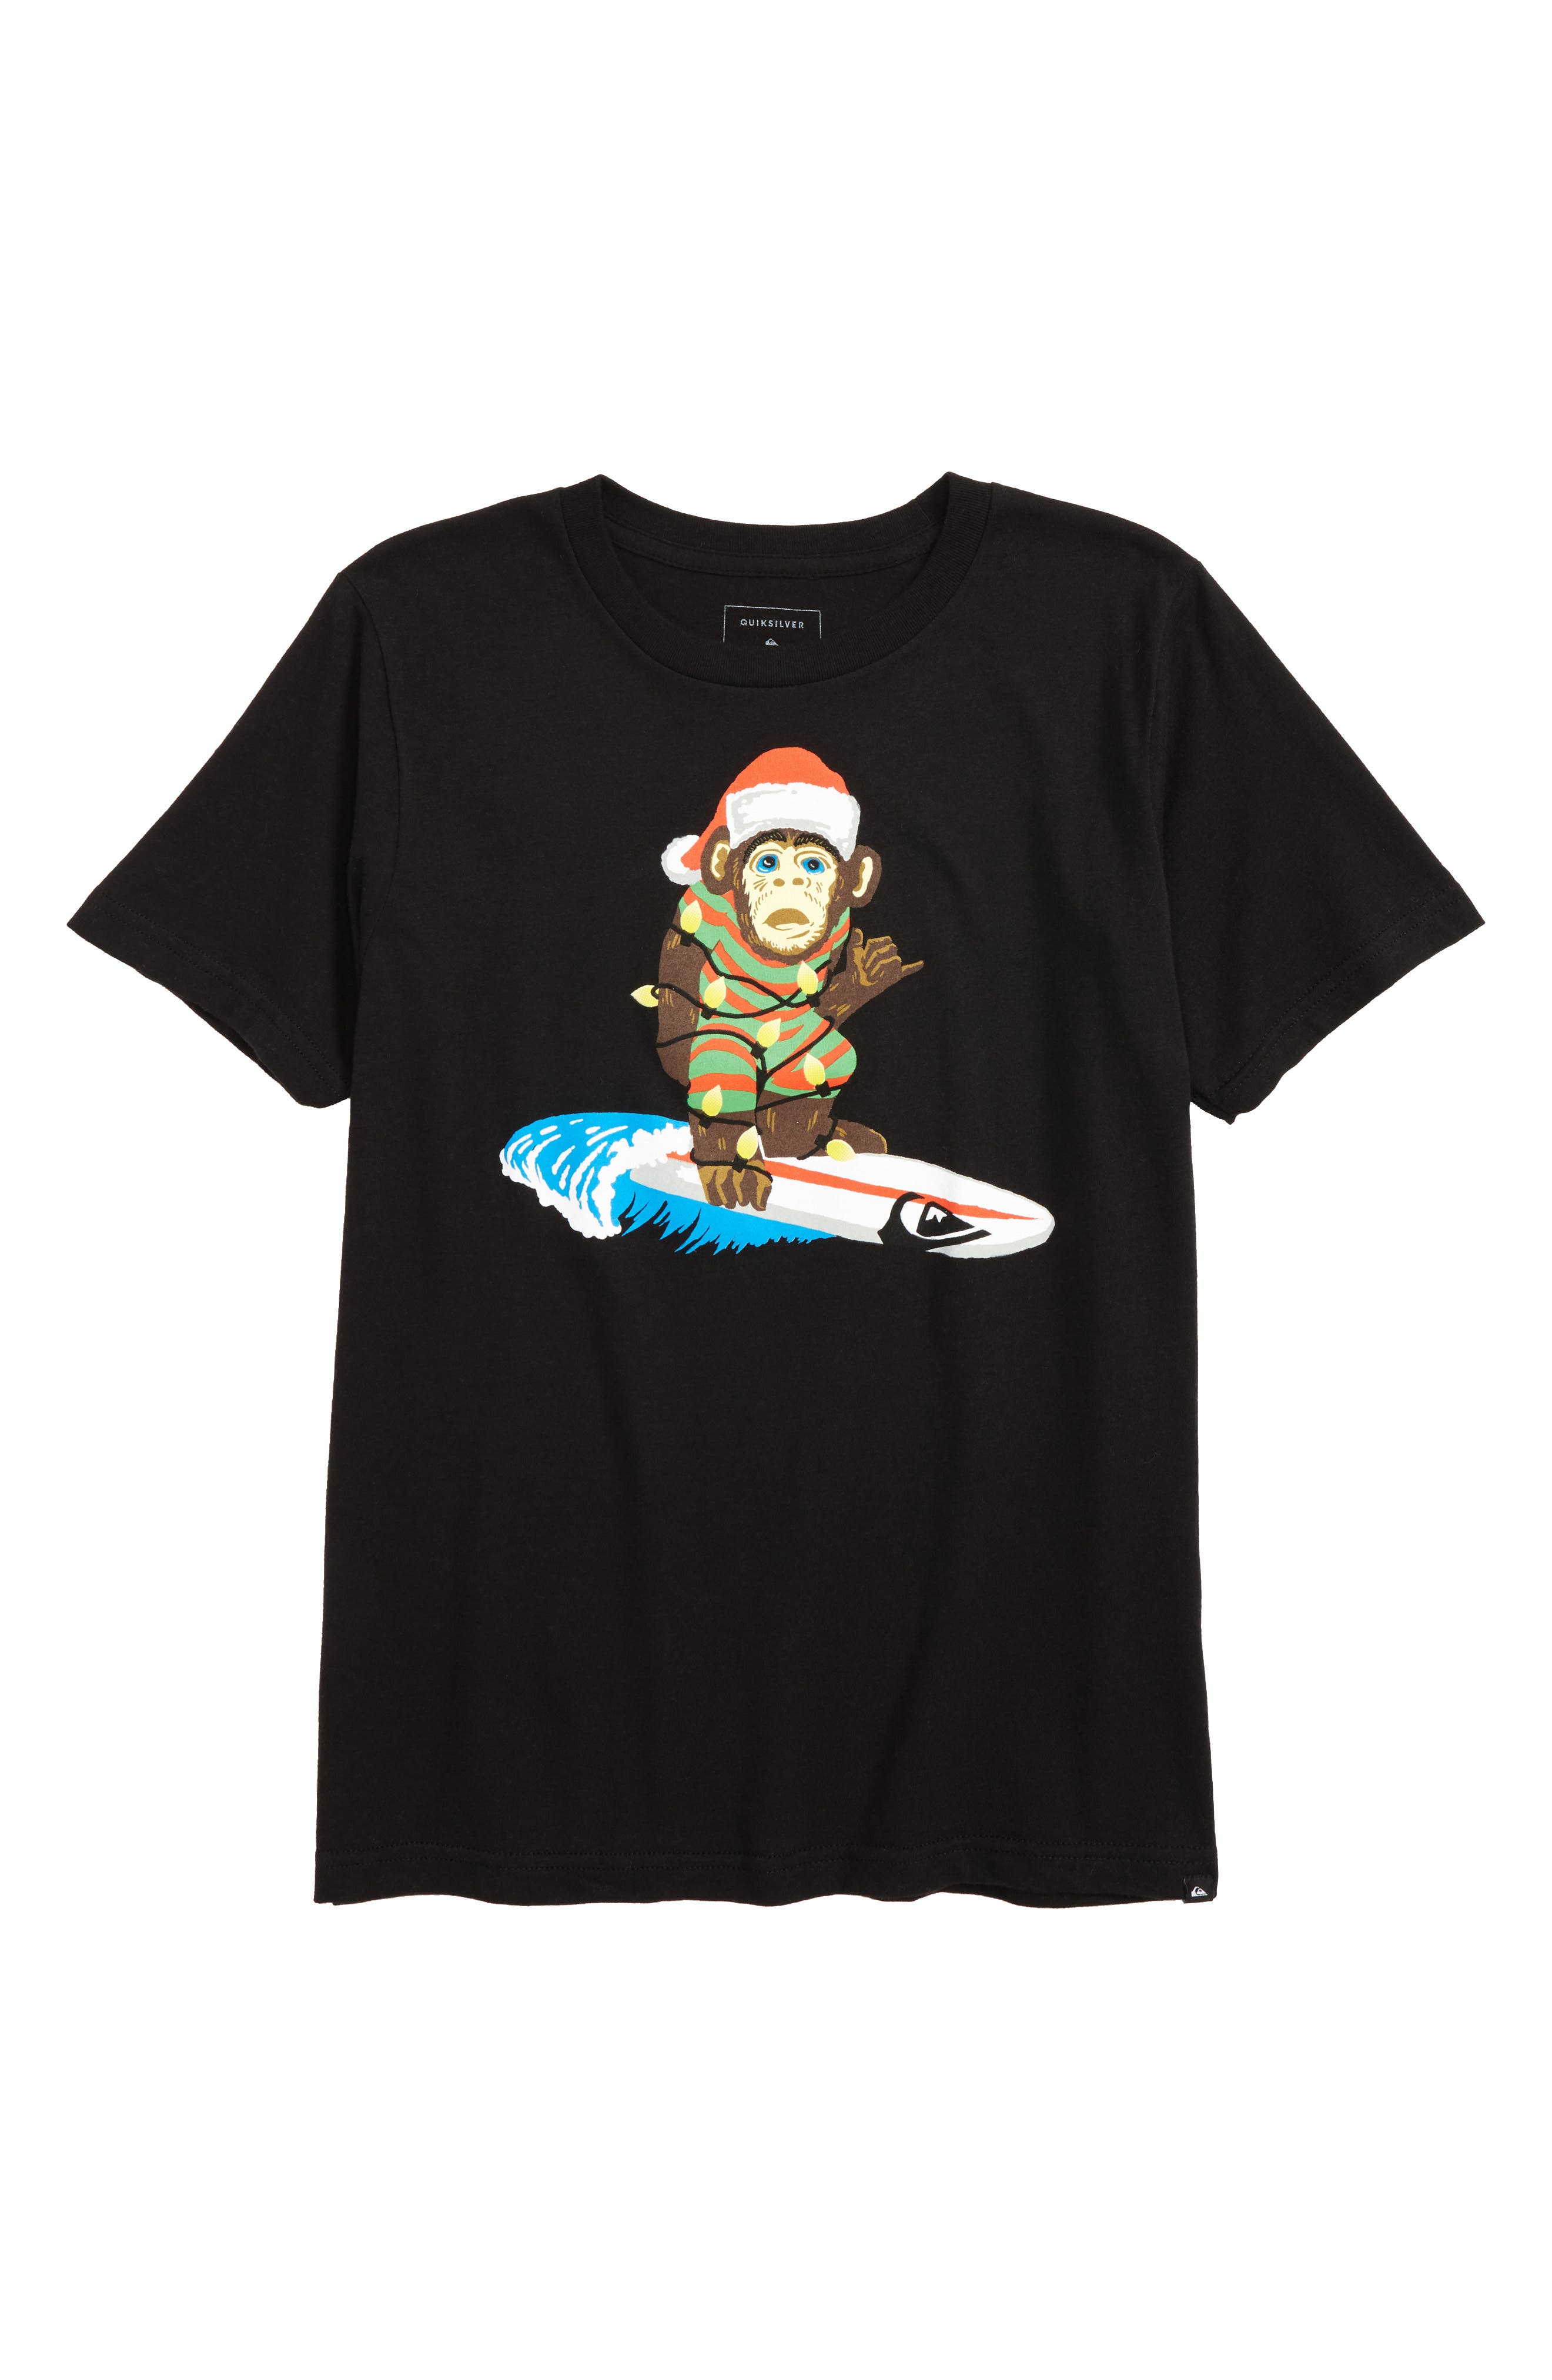 Alternate Image 1 Selected - Quiksilver Santa Surf Monkey T-Shirt (Big Boys)